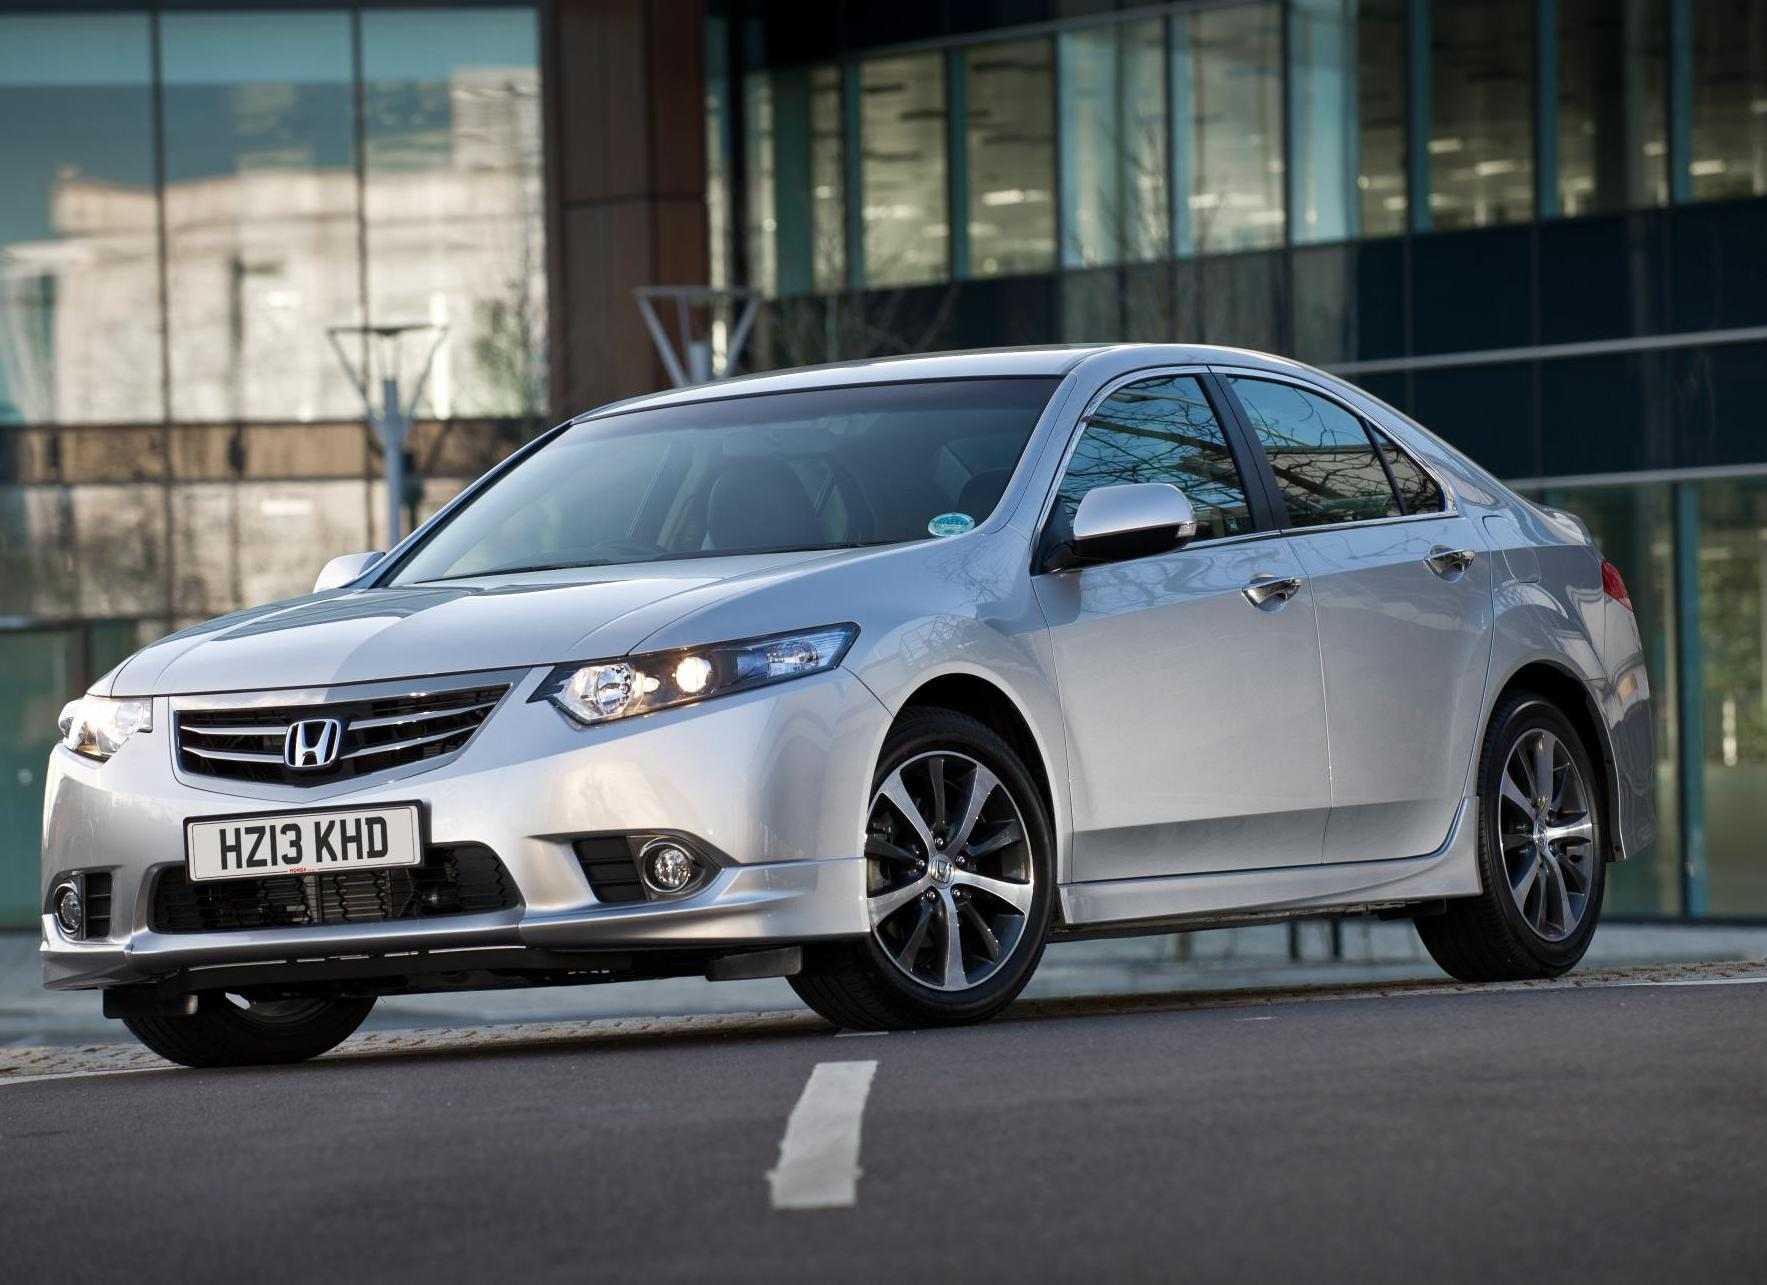 all-new honda accord india launch in 2015 - india car news